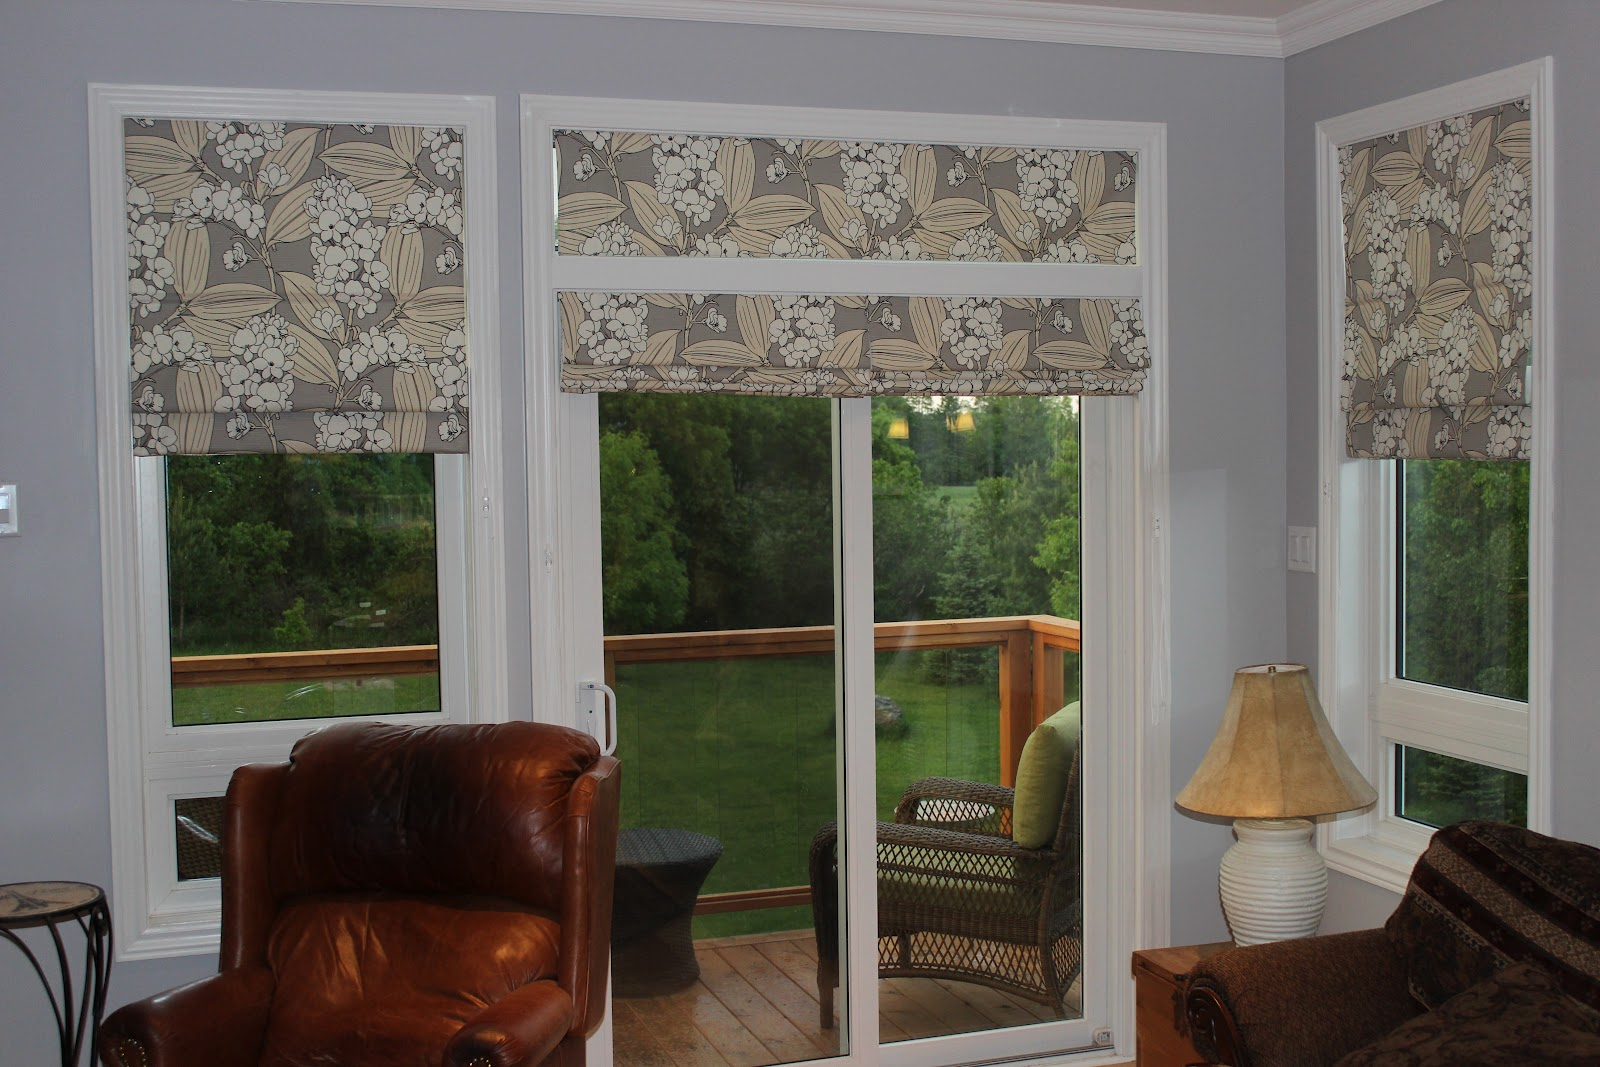 Delicieux Roman Shades In A Patio Door